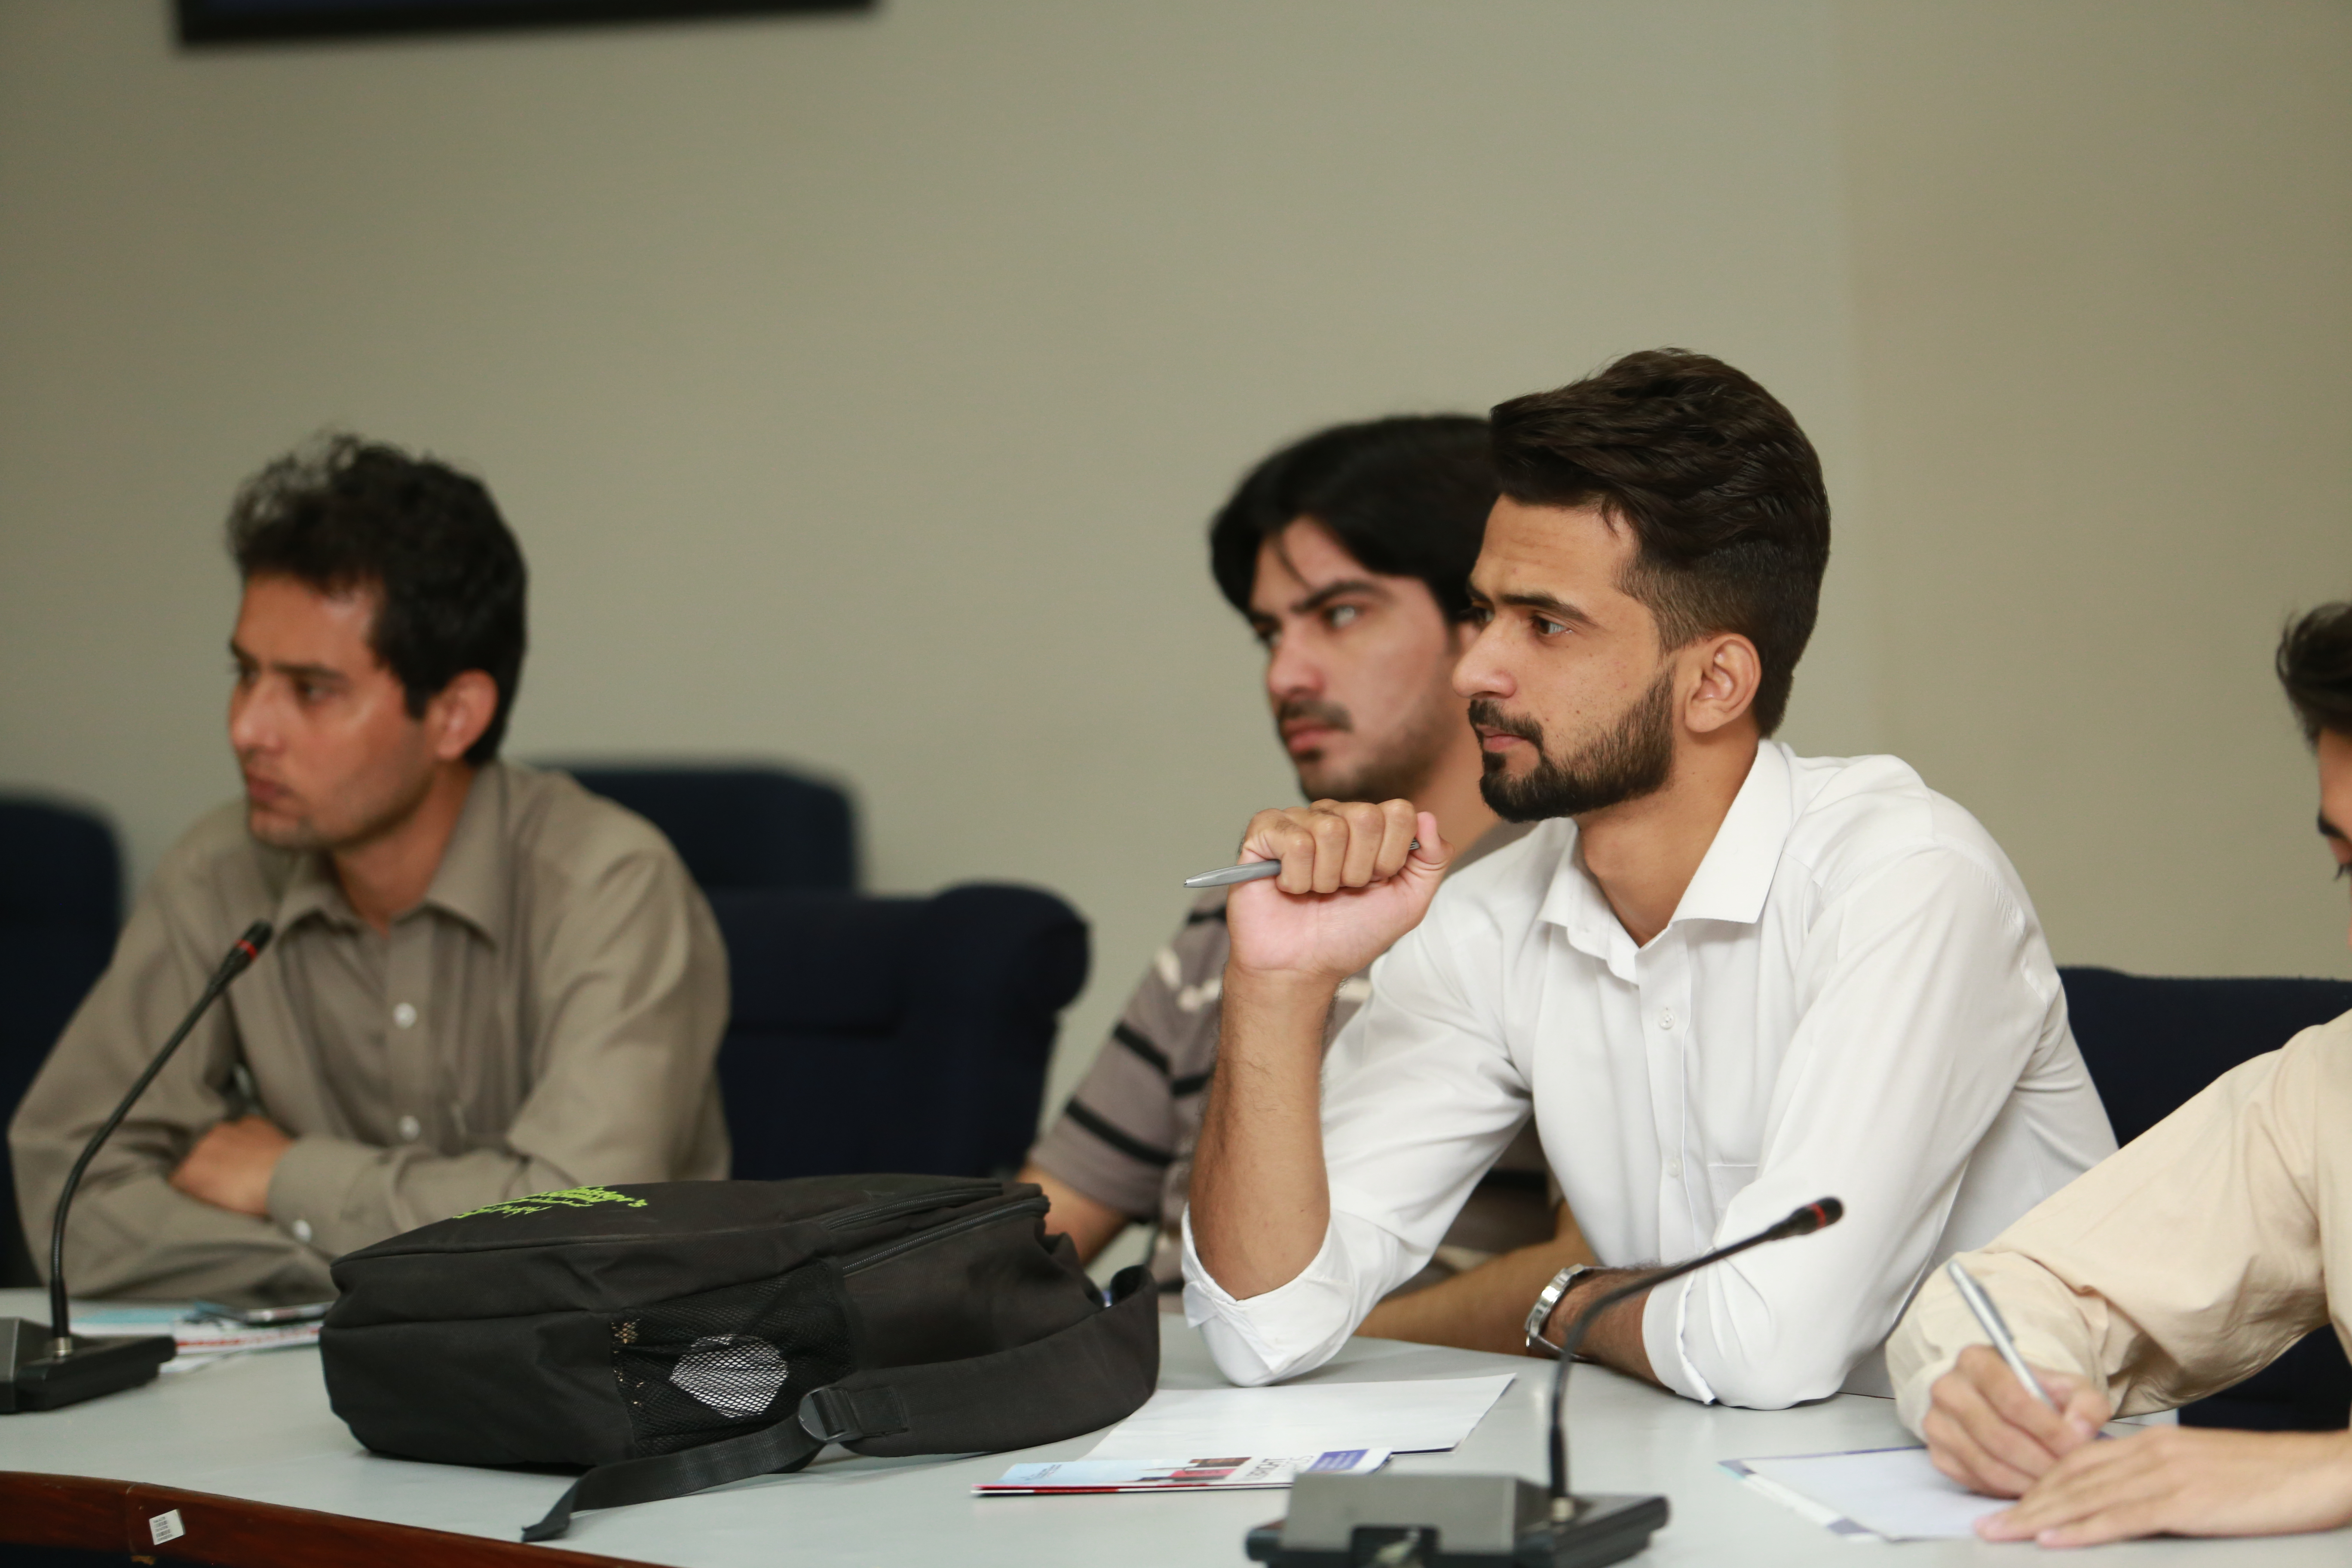 Students during the seminar